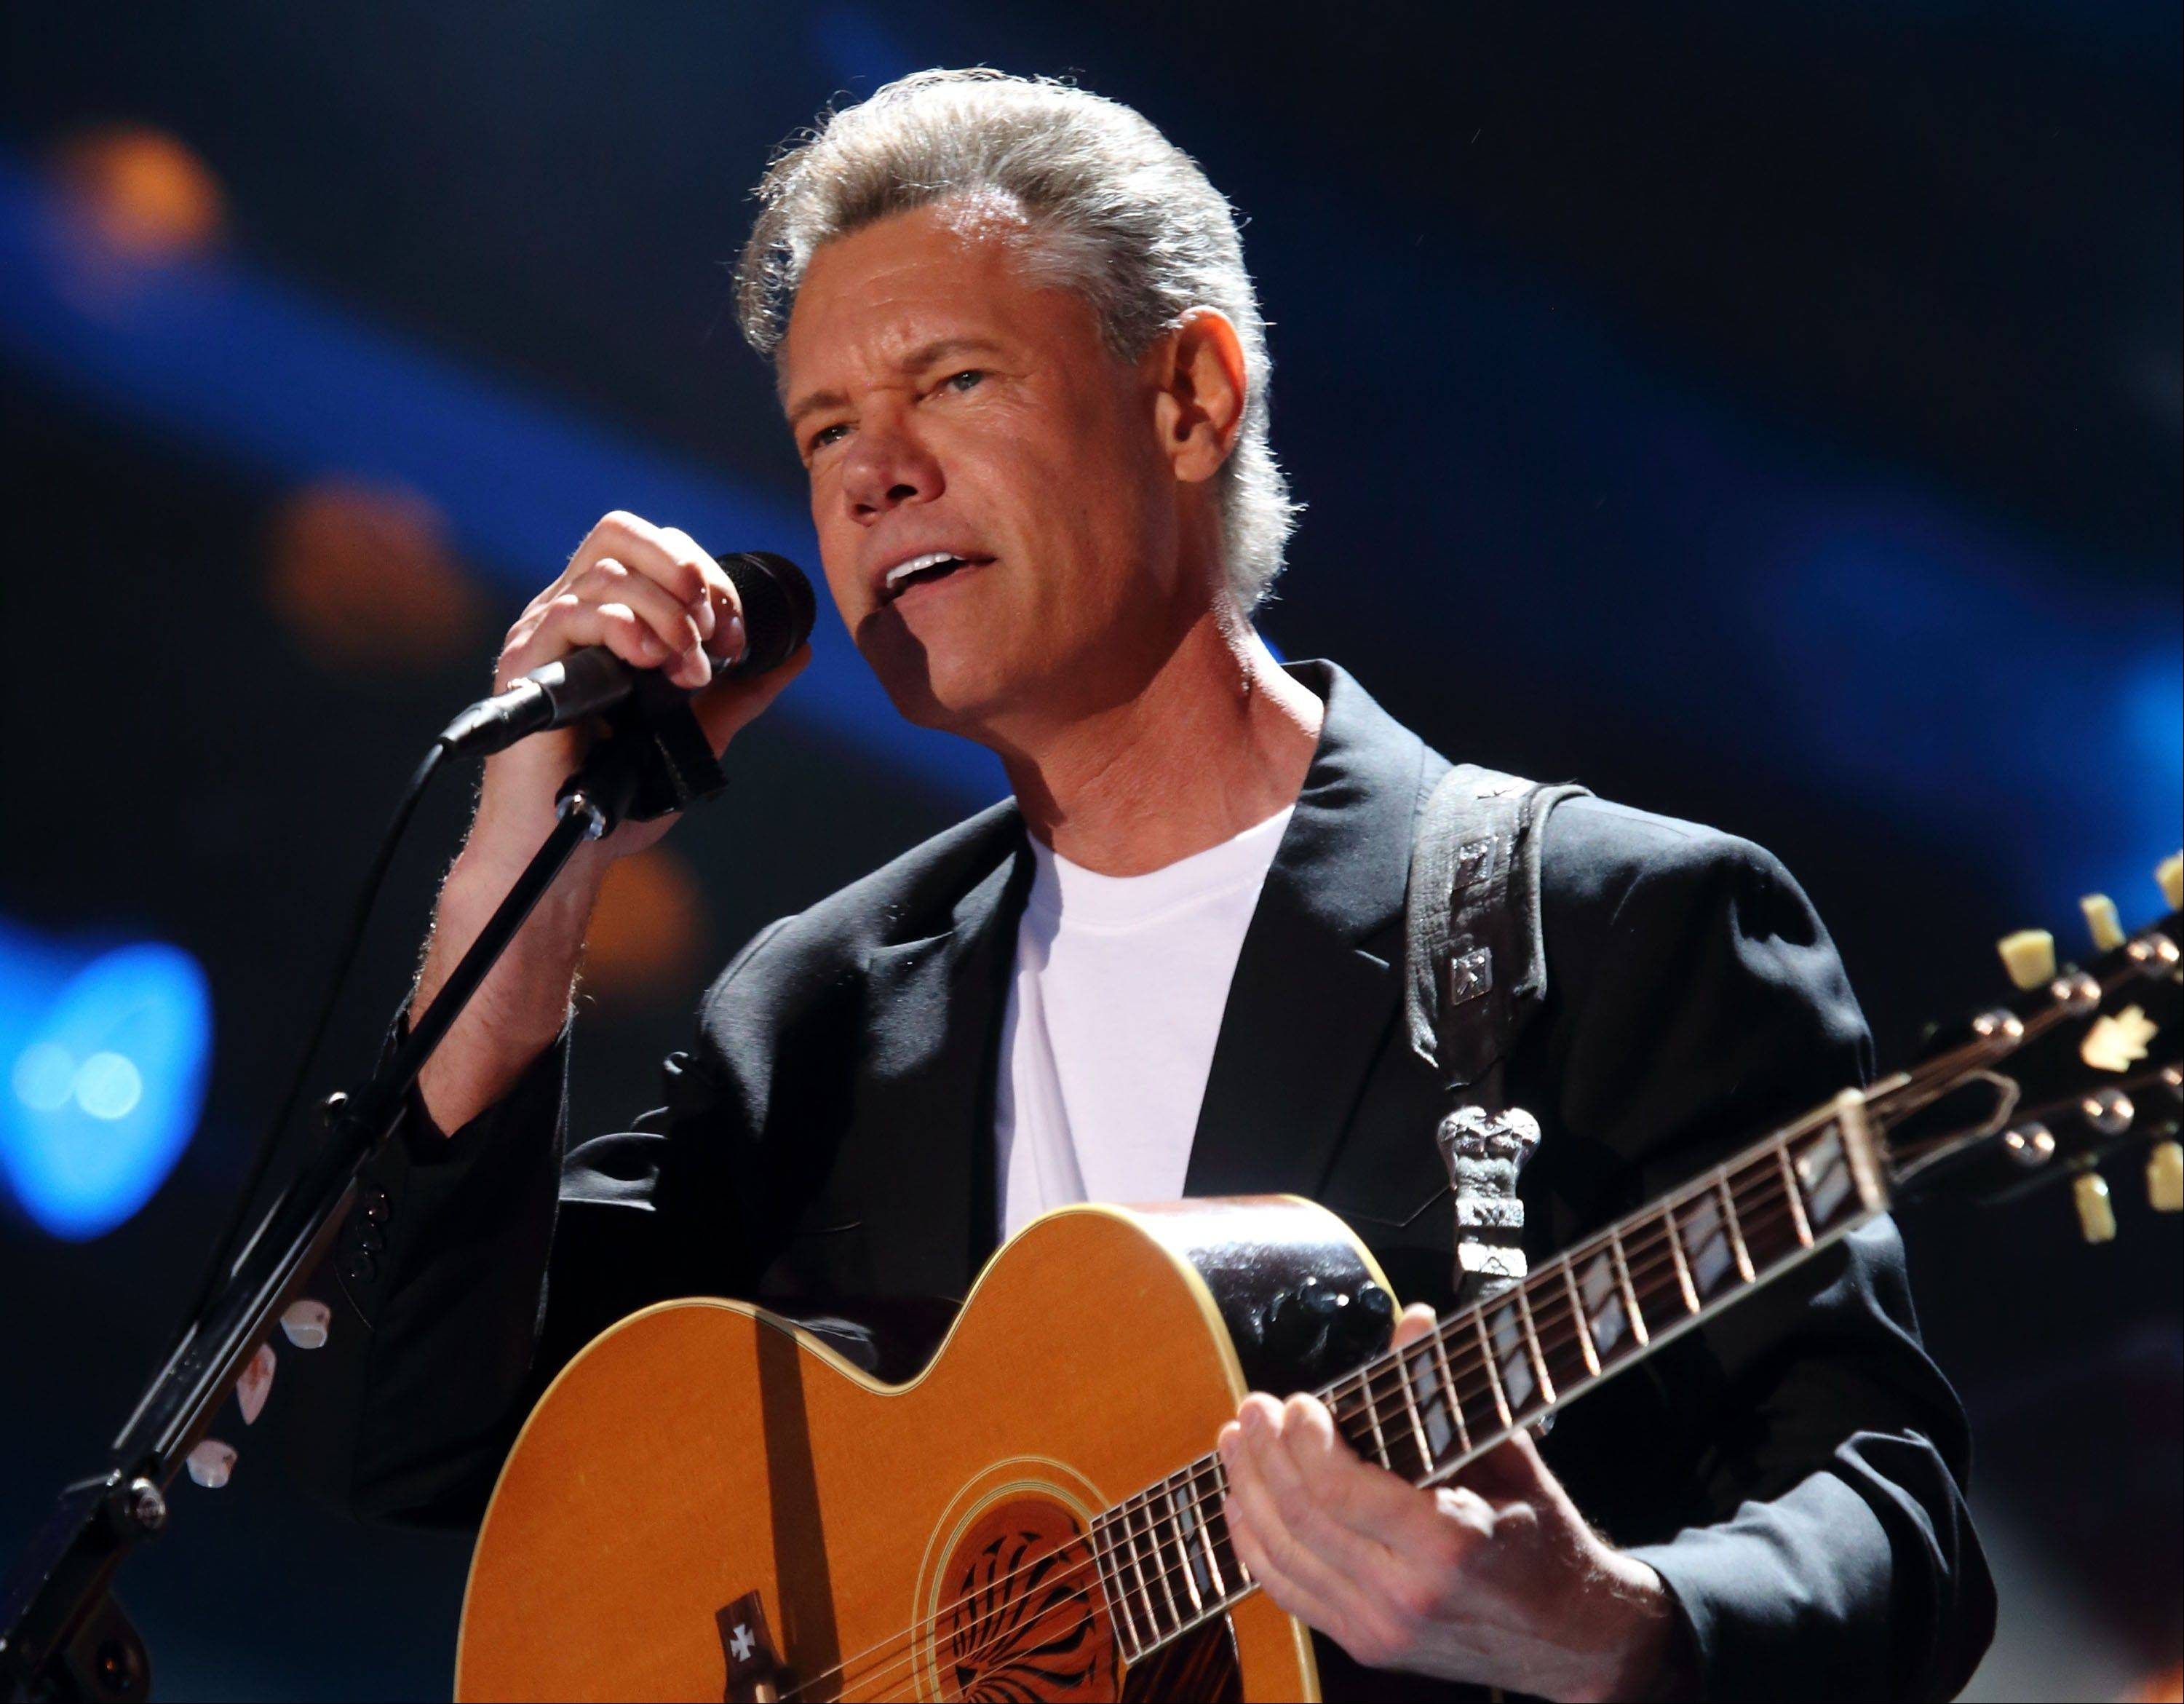 Randy Travis Travis is awake and making progress as he recovers from surgery following a stroke.